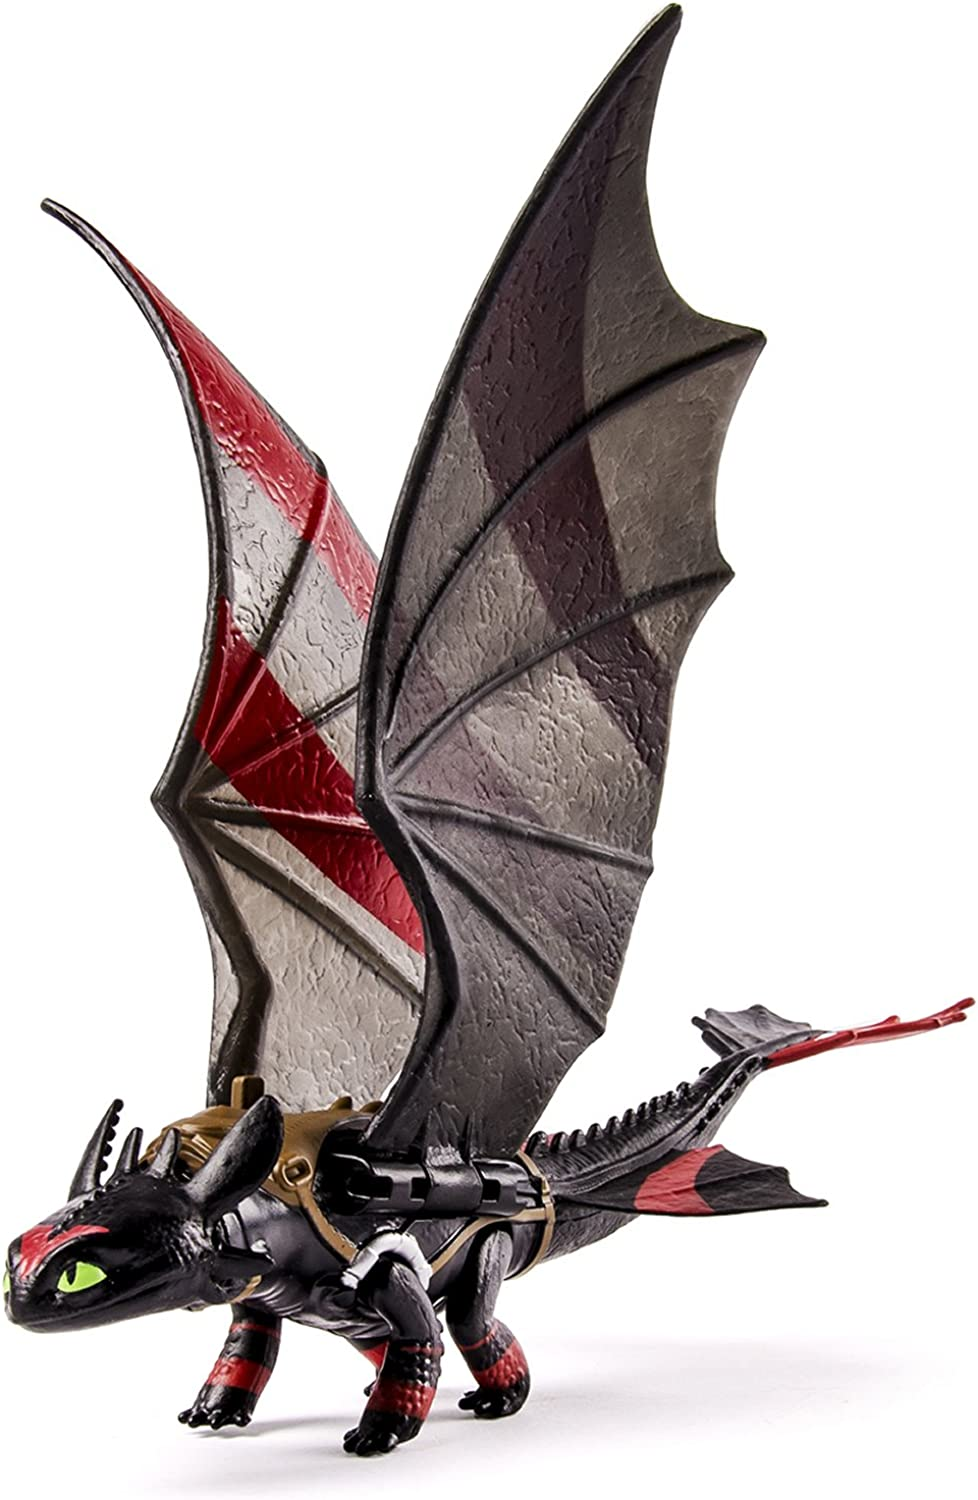 Dragons 2  Krokmou (Wing Motion)  With Racing Stripes  Power Dragon Figurine